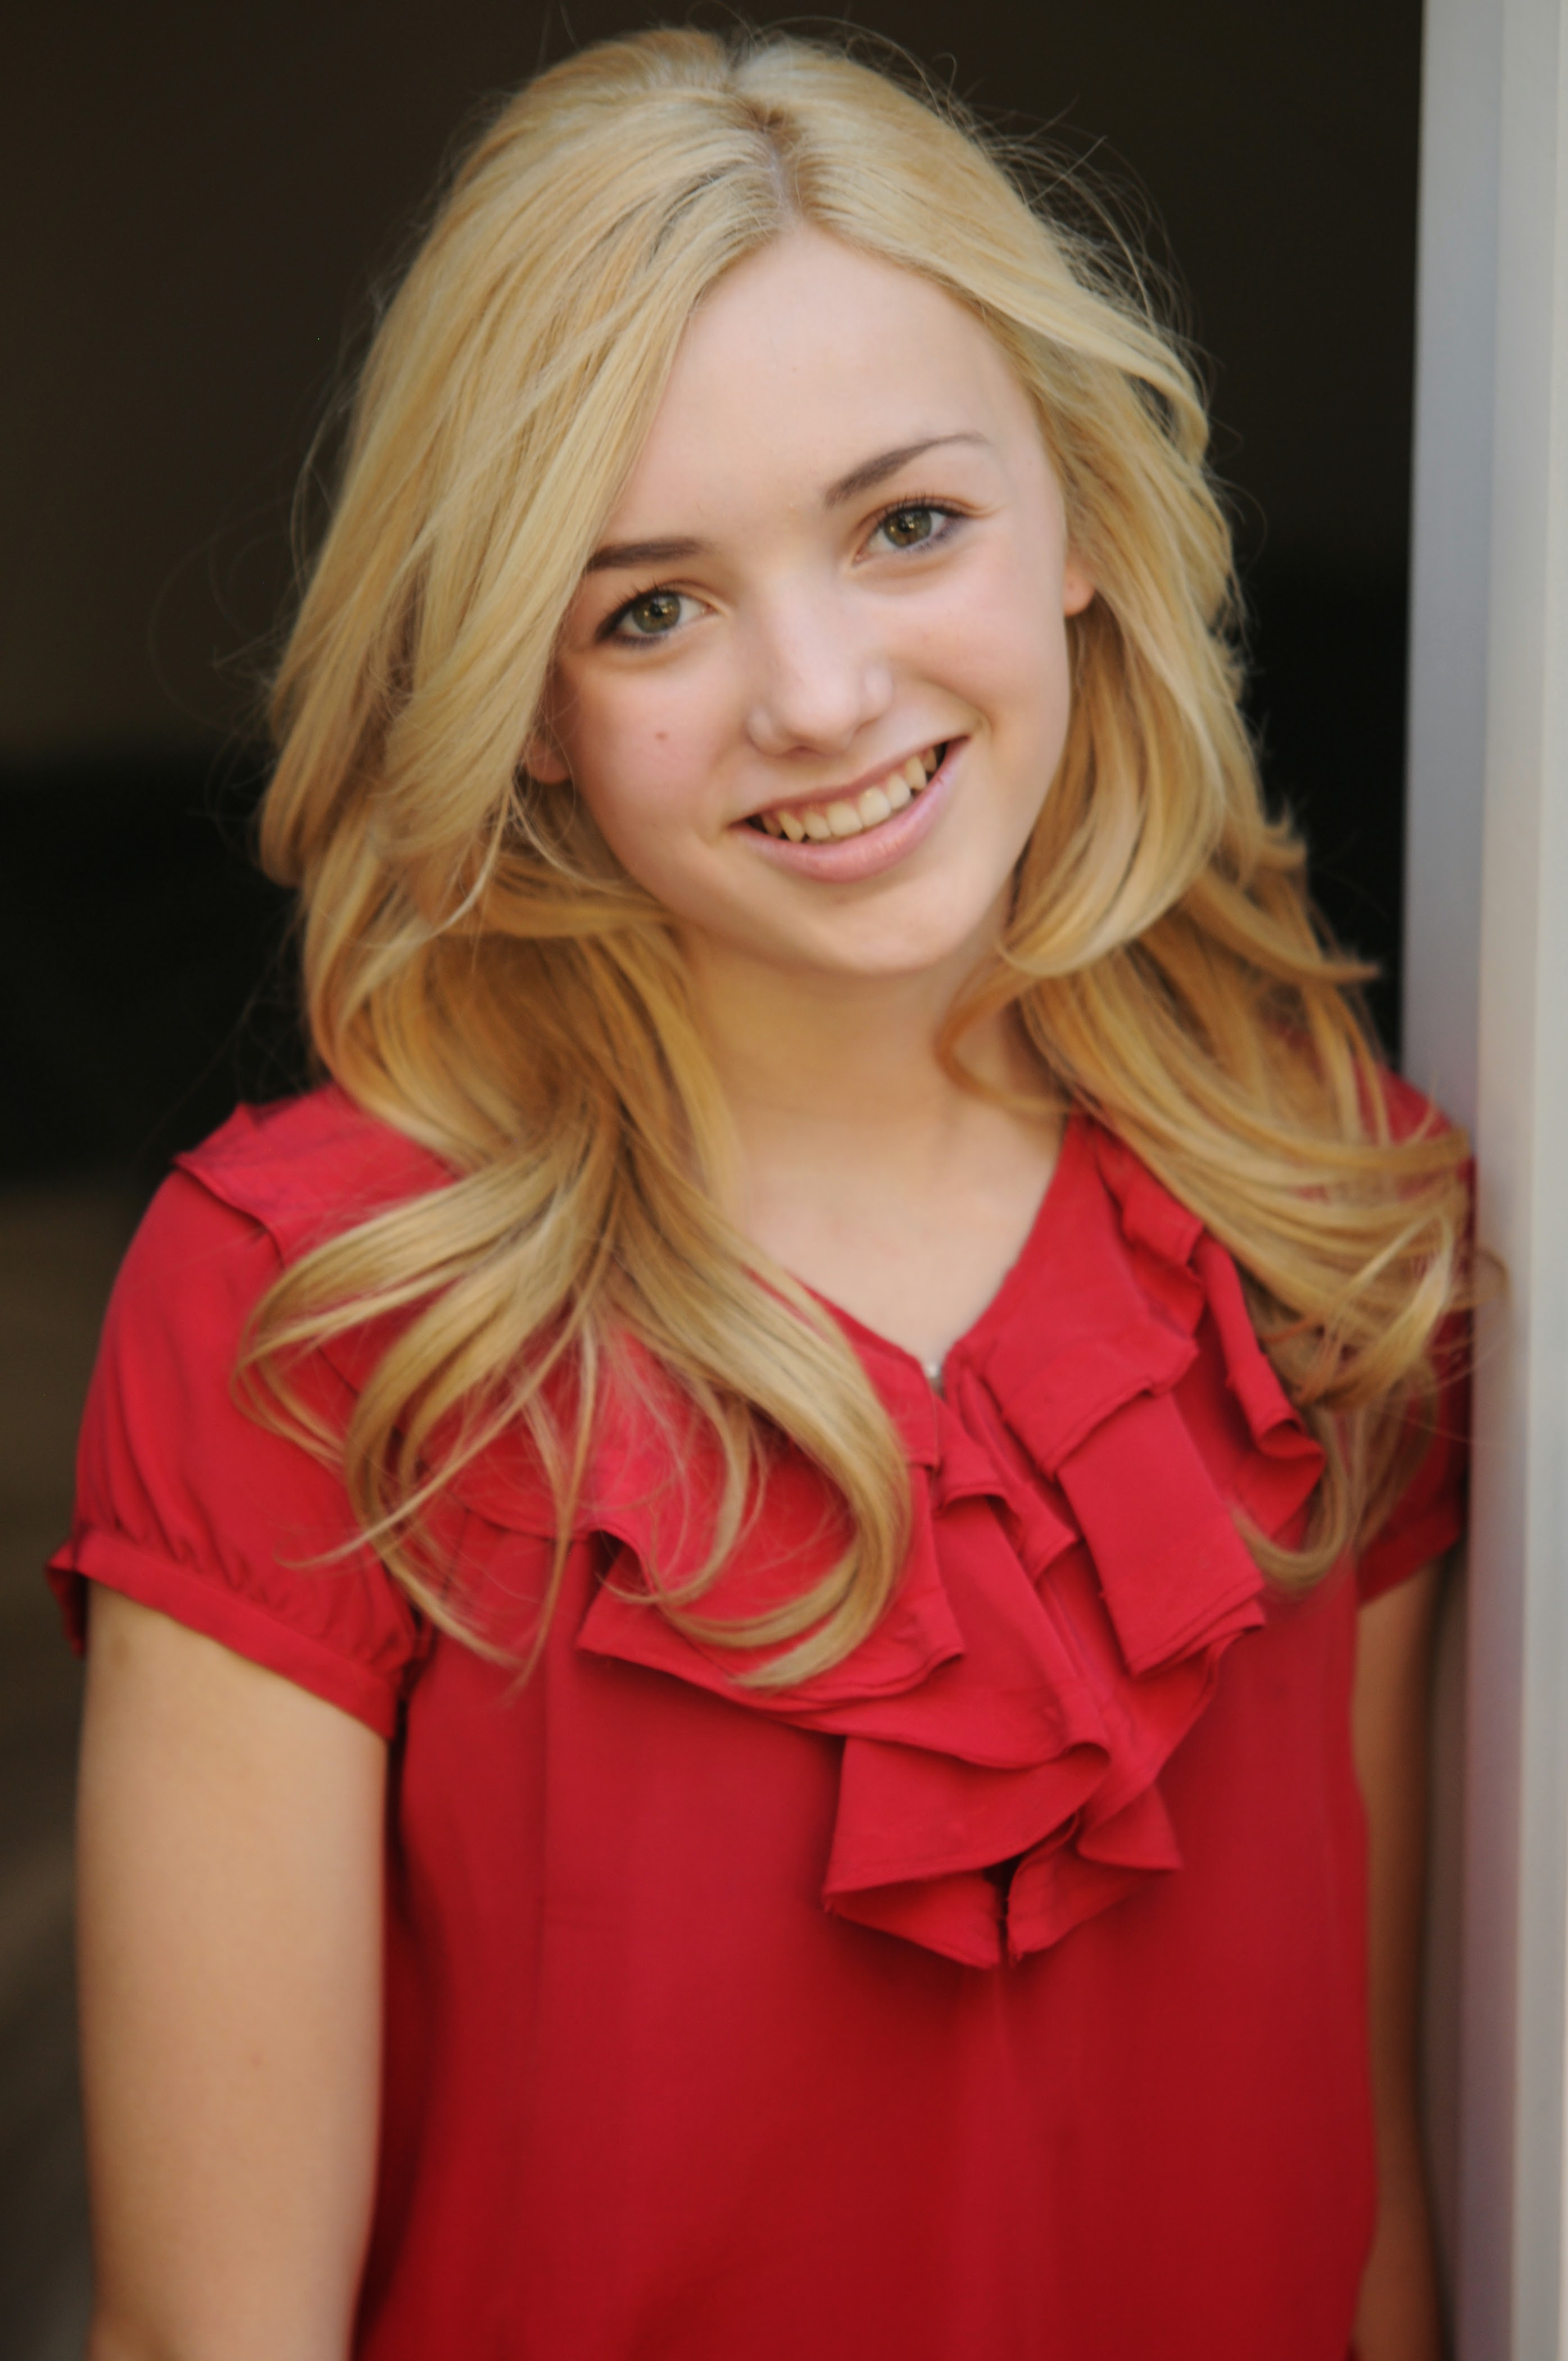 Peyton list actress born 1986 dating 5